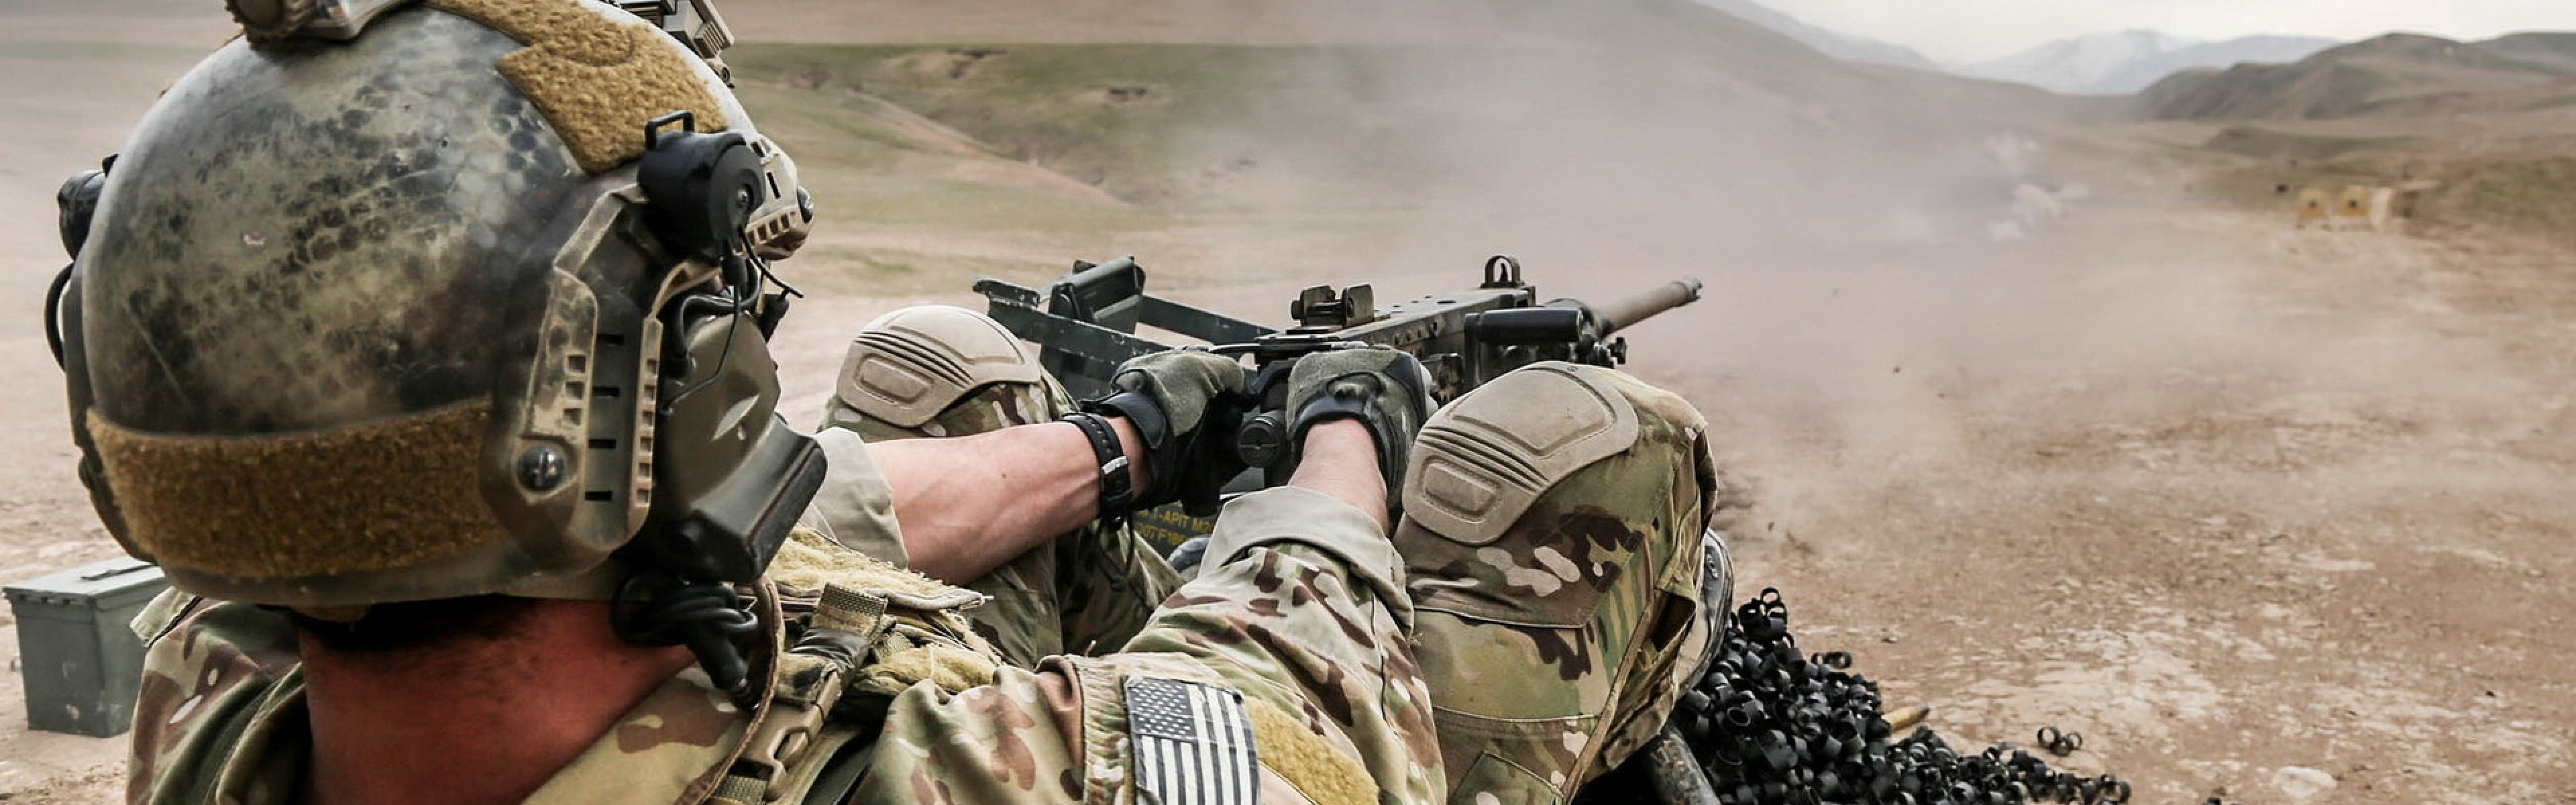 Wallpaper machine gun, us, special forces, afghanistan